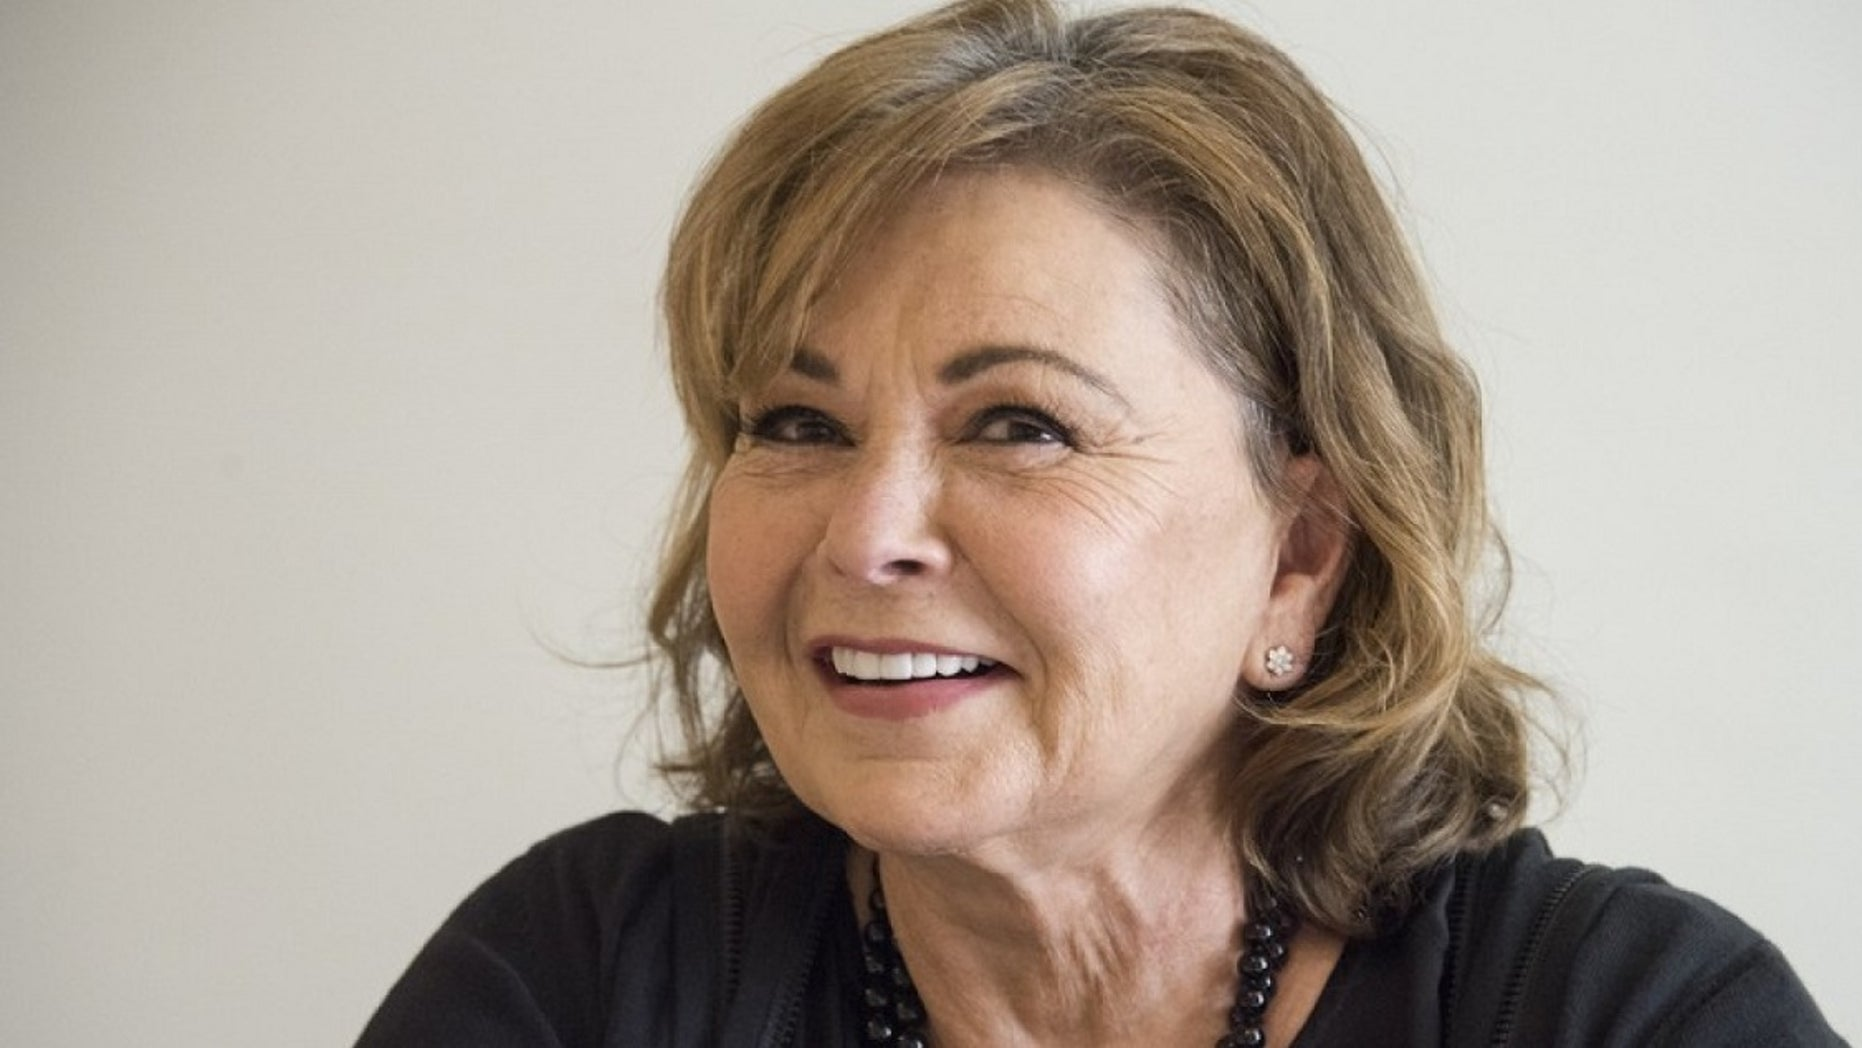 Roseanne Barr says she's fine after rumors of a health scare spread via social media.